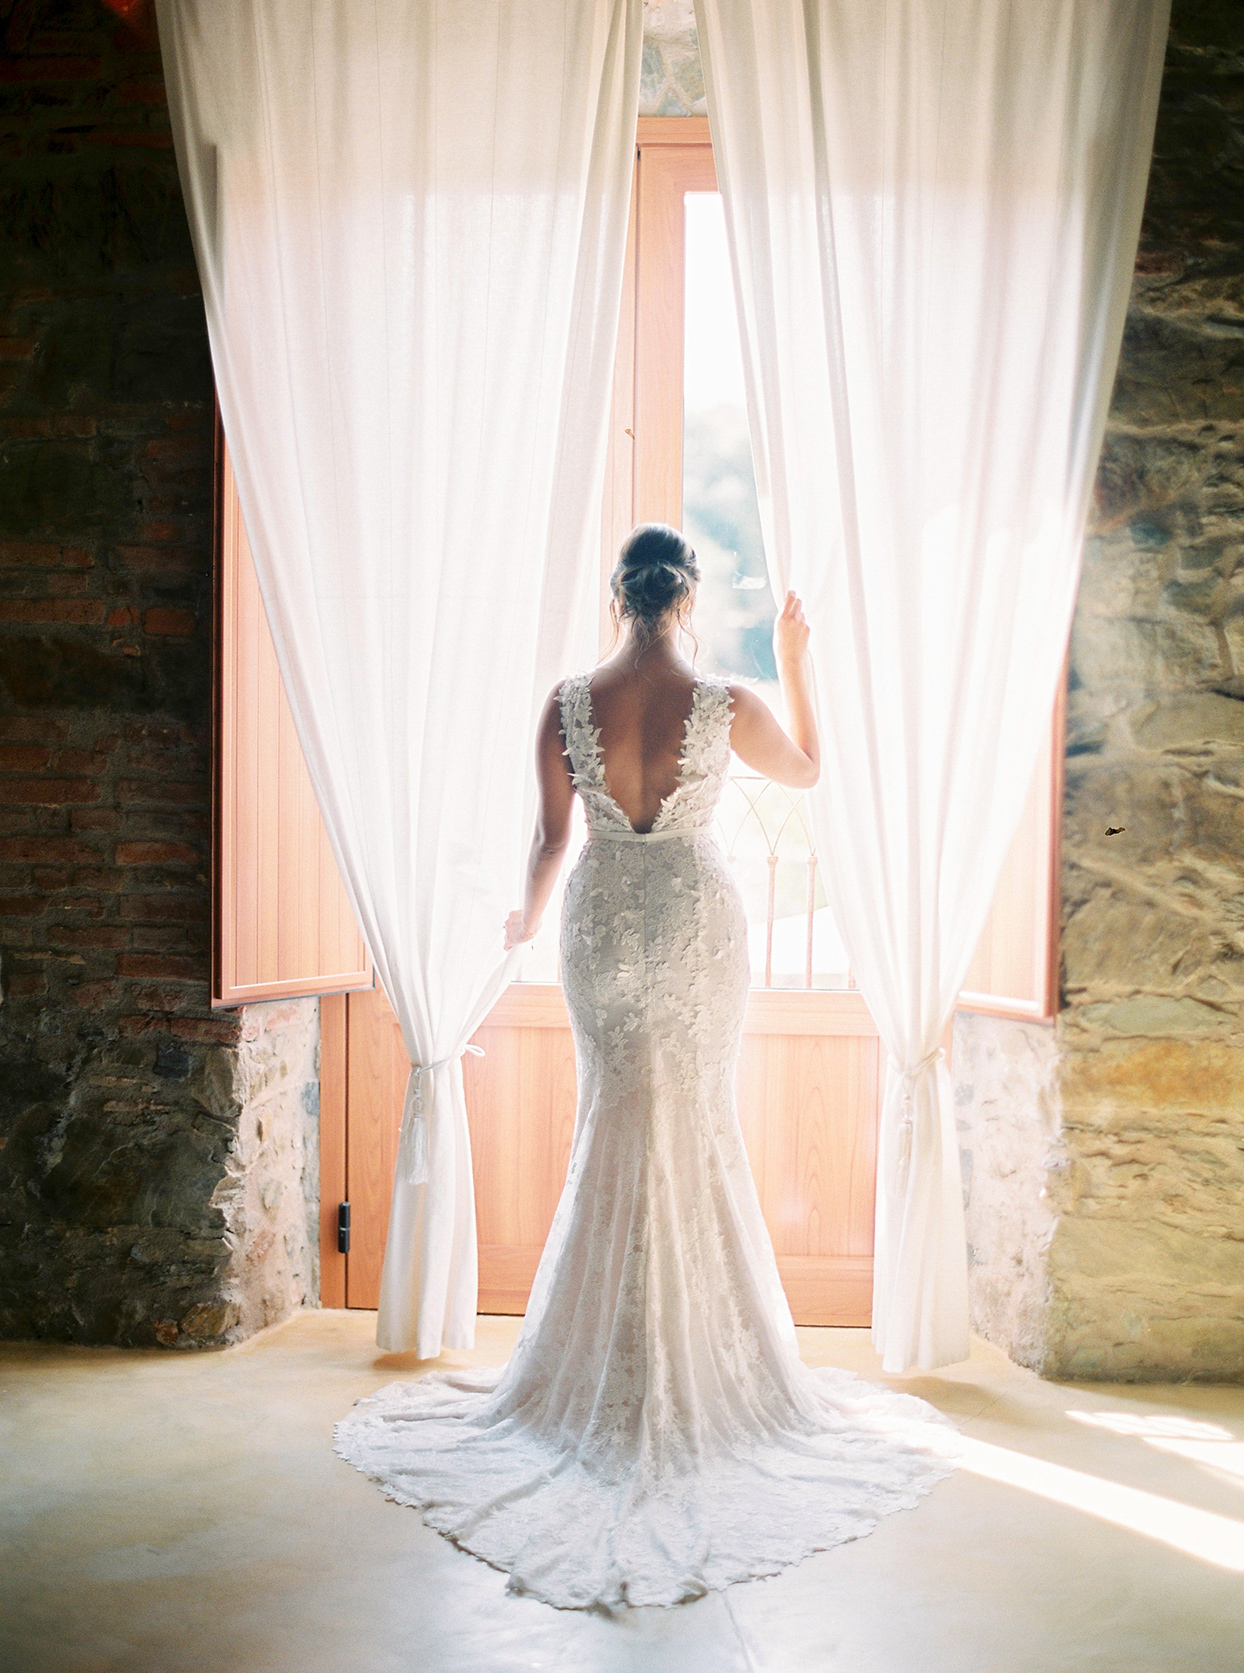 alyssa macia wedding bride silhouette in front of window